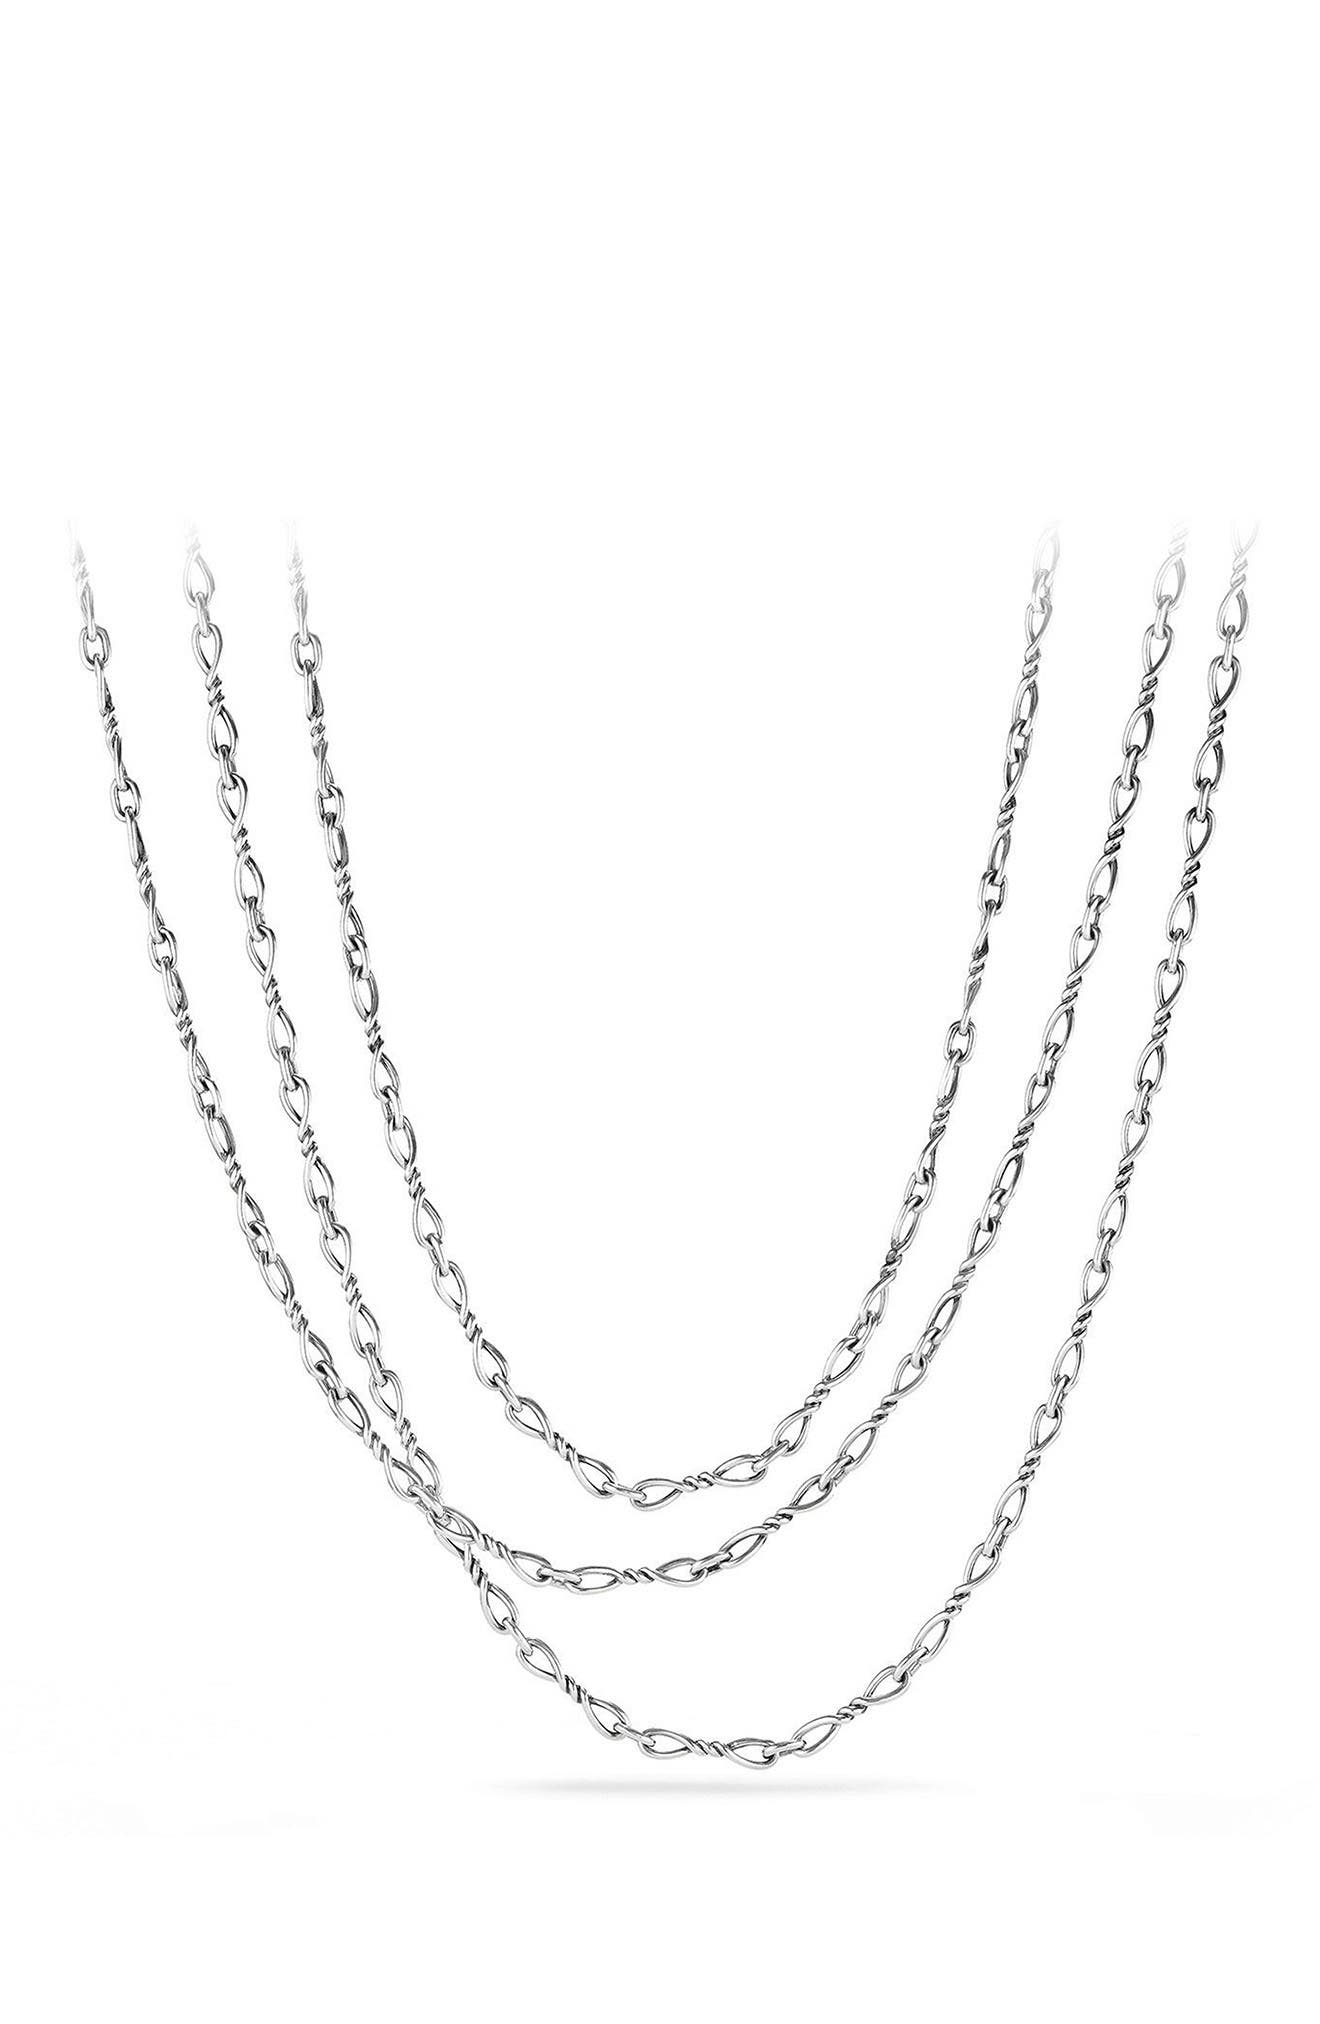 Continuance Chain Necklace,                             Main thumbnail 1, color,                             040